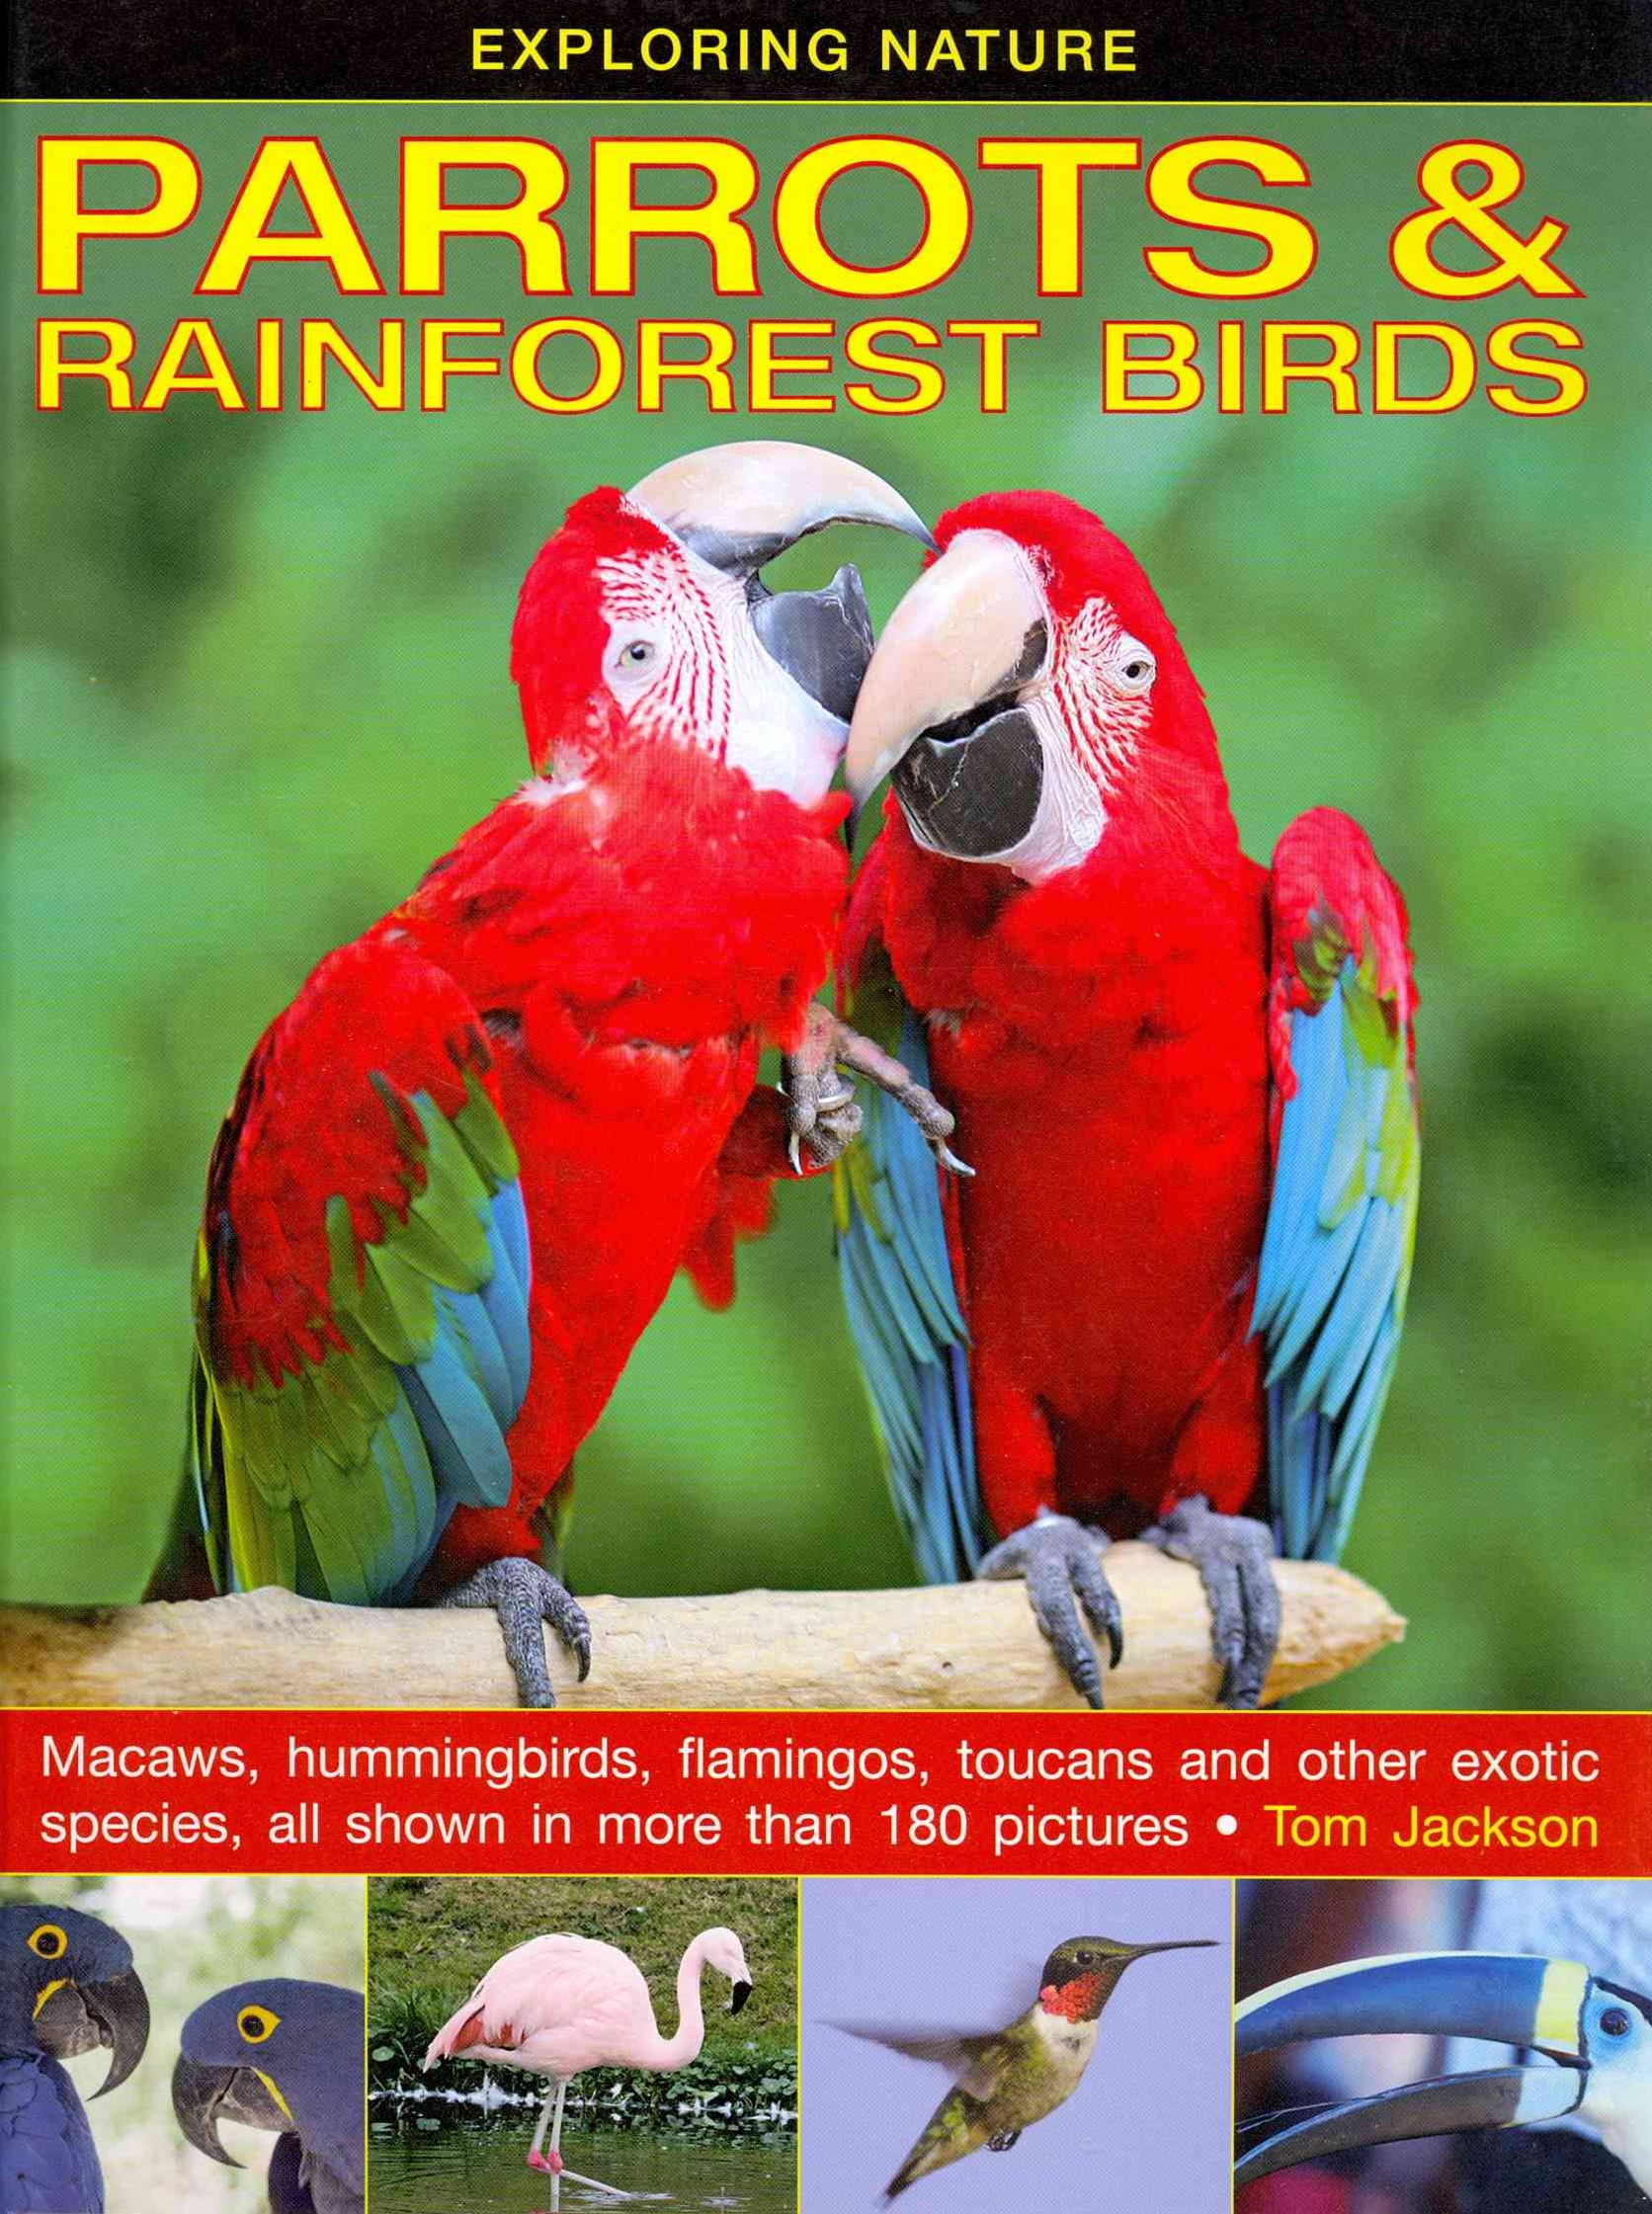 Exploring Nature: Parrots & Rainforest Birds